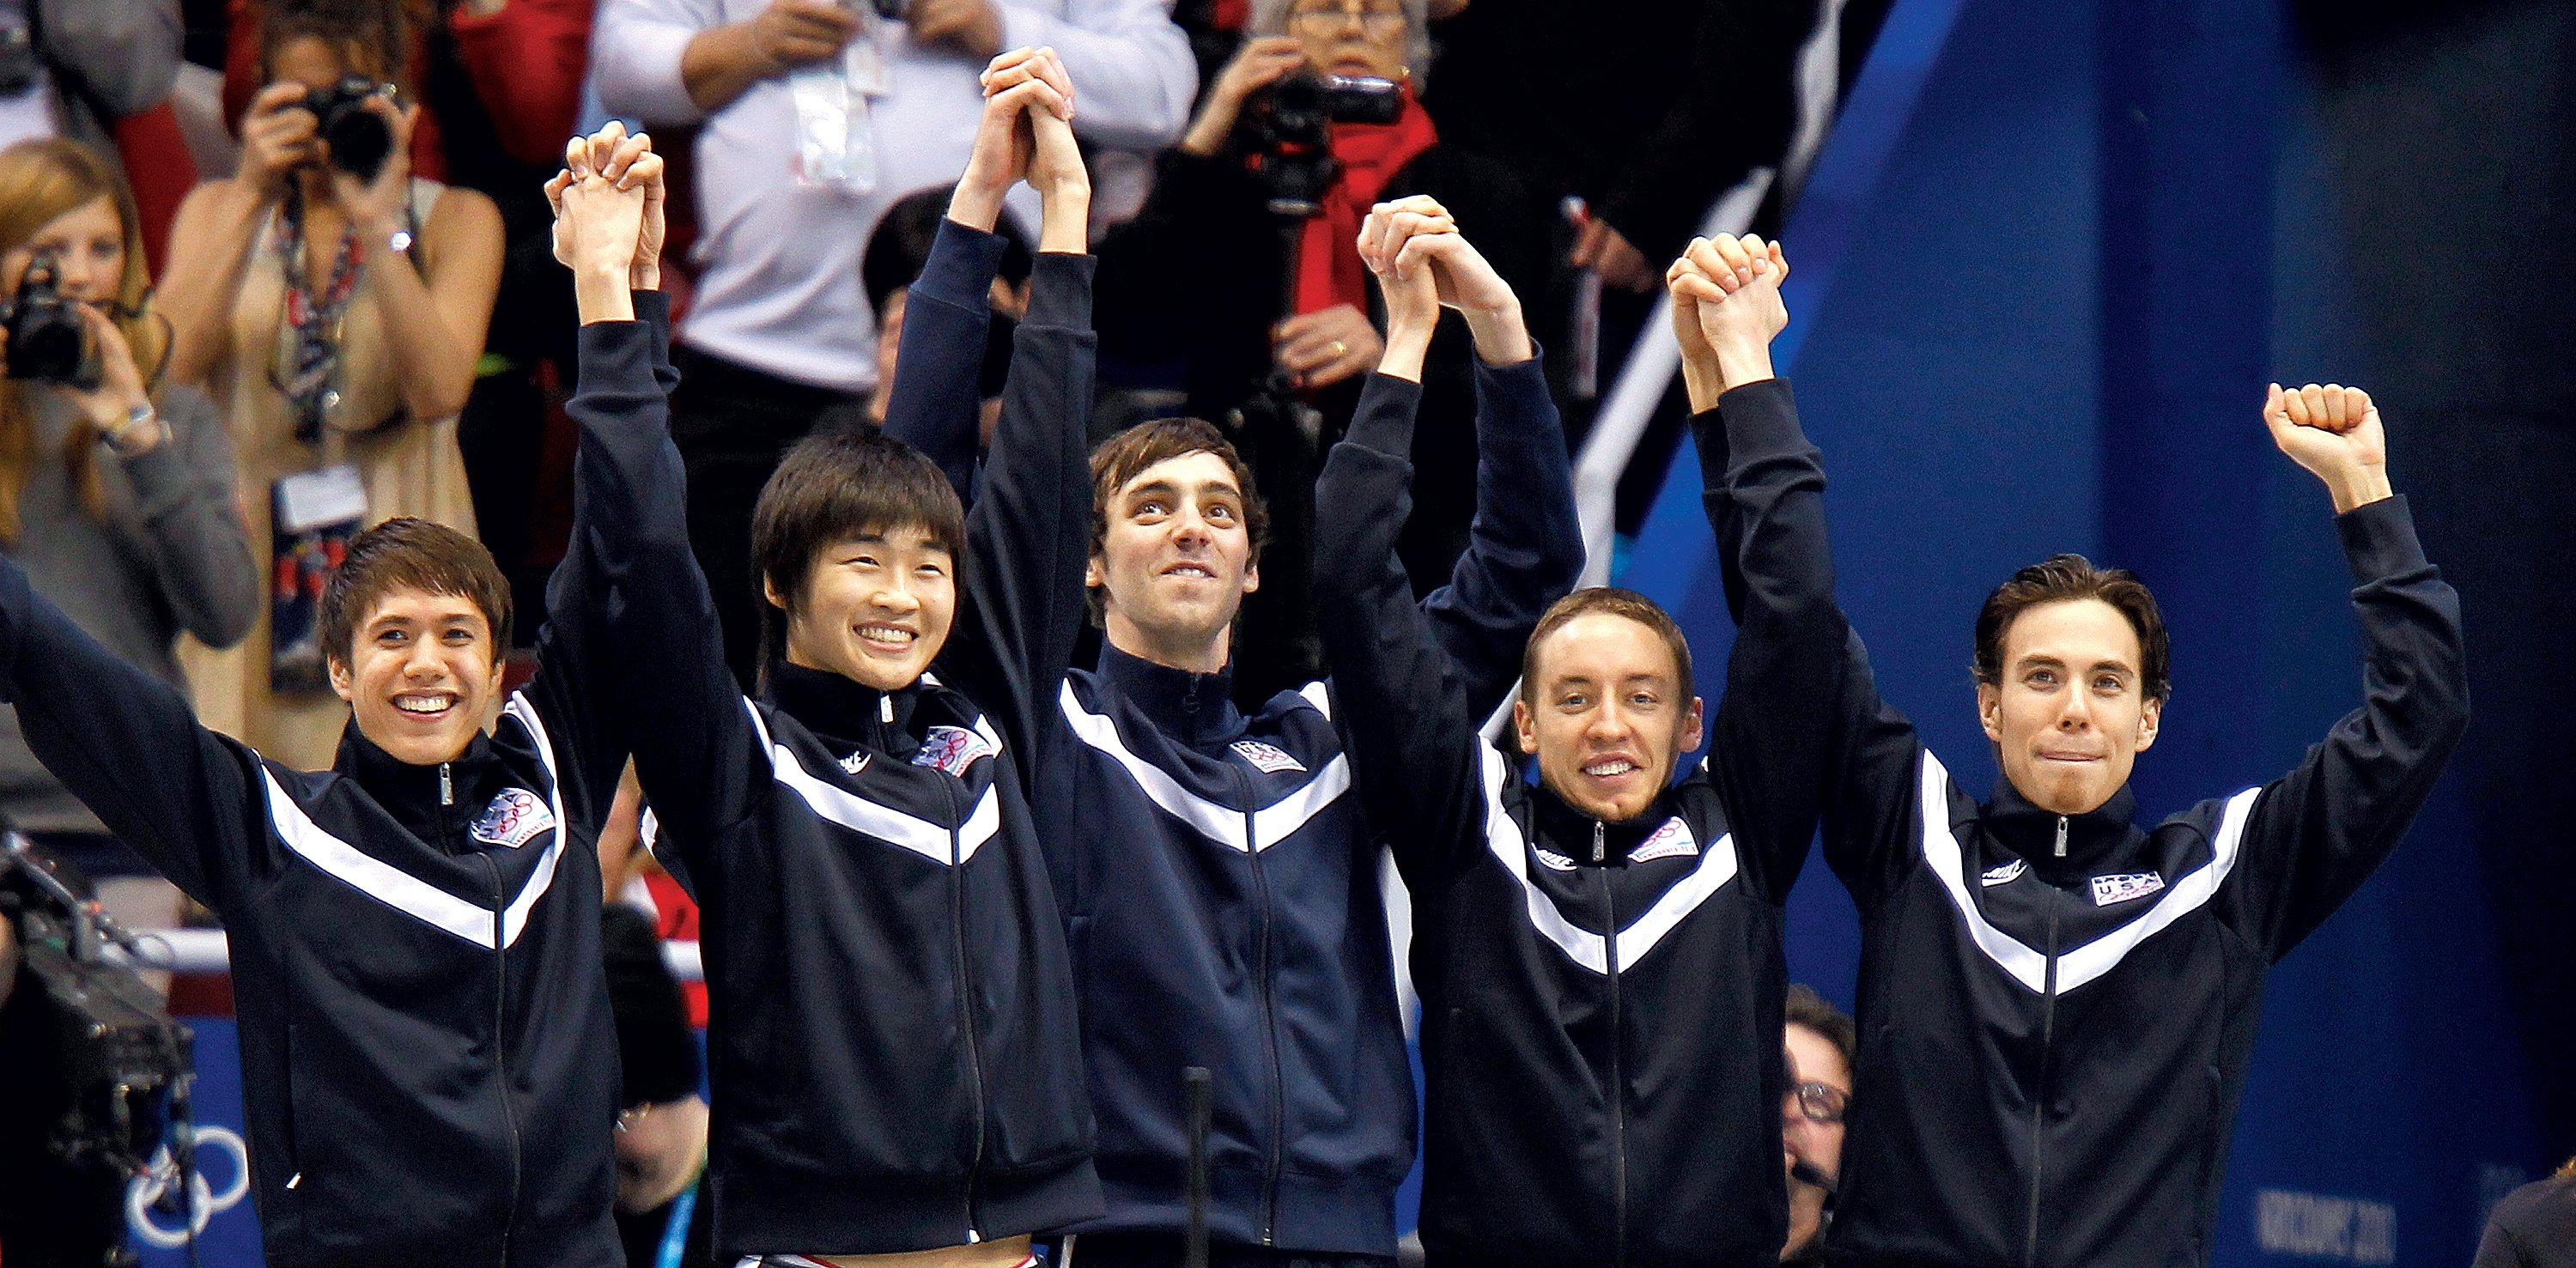 Cho, second from left, was just 18 when he won an Olympic bronze in Vancouver in 2010. Photograph by Harry E. Walker/MCT VIA Newscom.